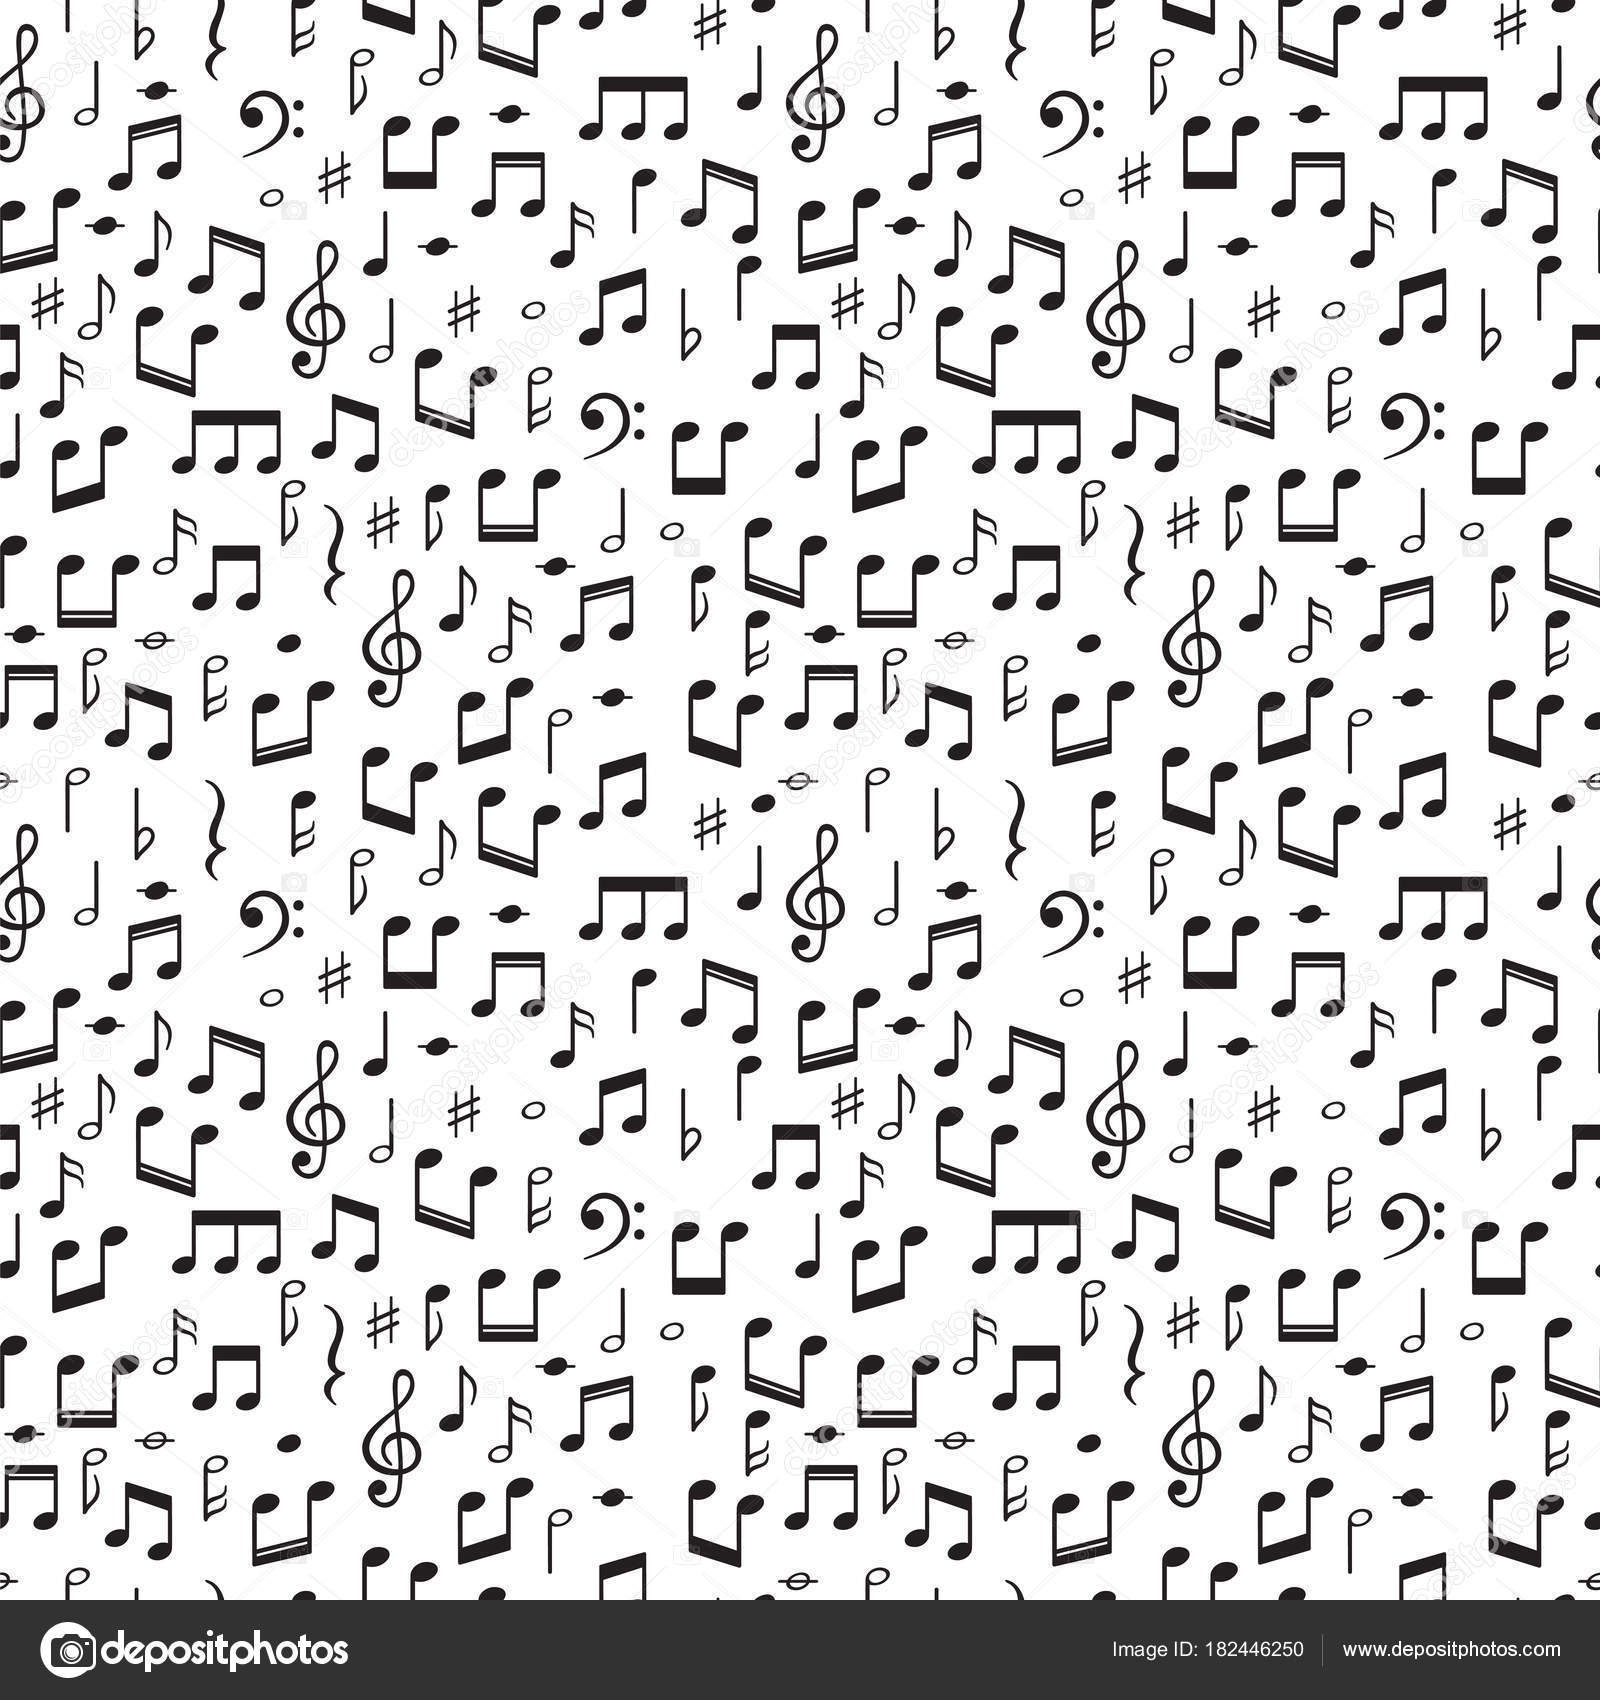 Seamless pattern with music notes hand drawn background with seamless pattern with music notes hand drawn background with music symbols stock vector biocorpaavc Images